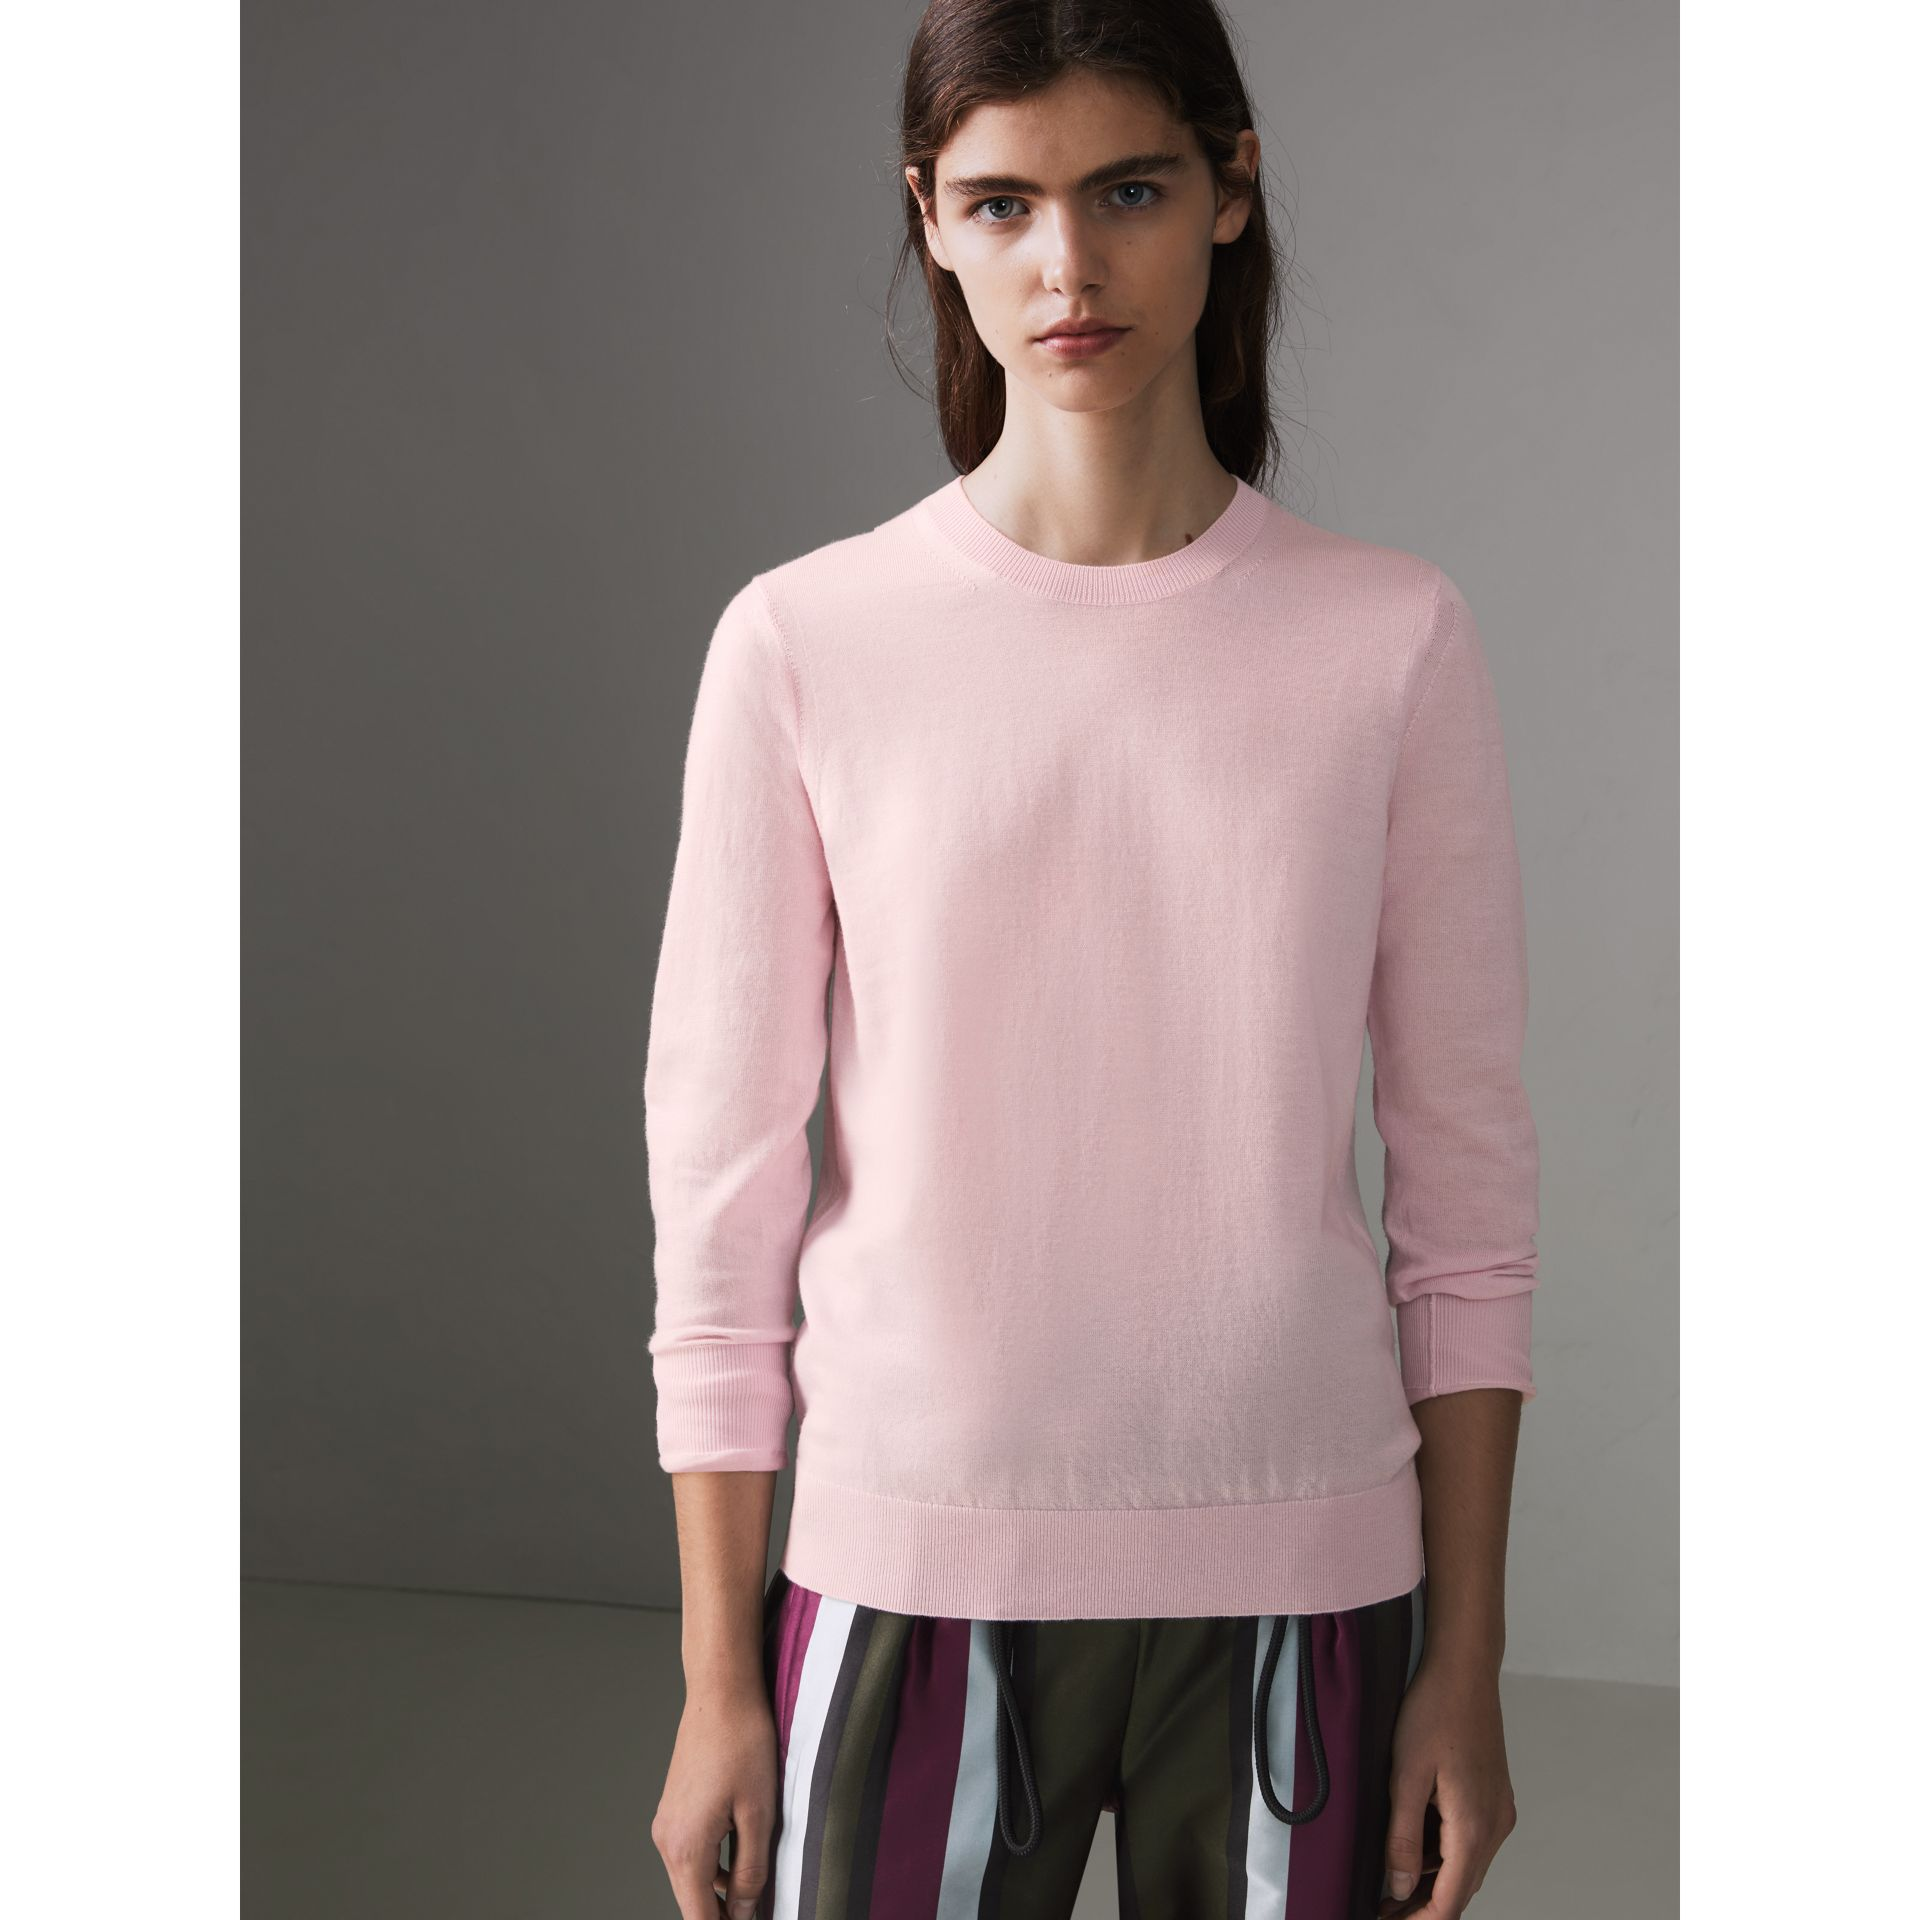 Check Elbow Detail Merino Wool Sweater in Light Pink - Women | Burberry - gallery image 4